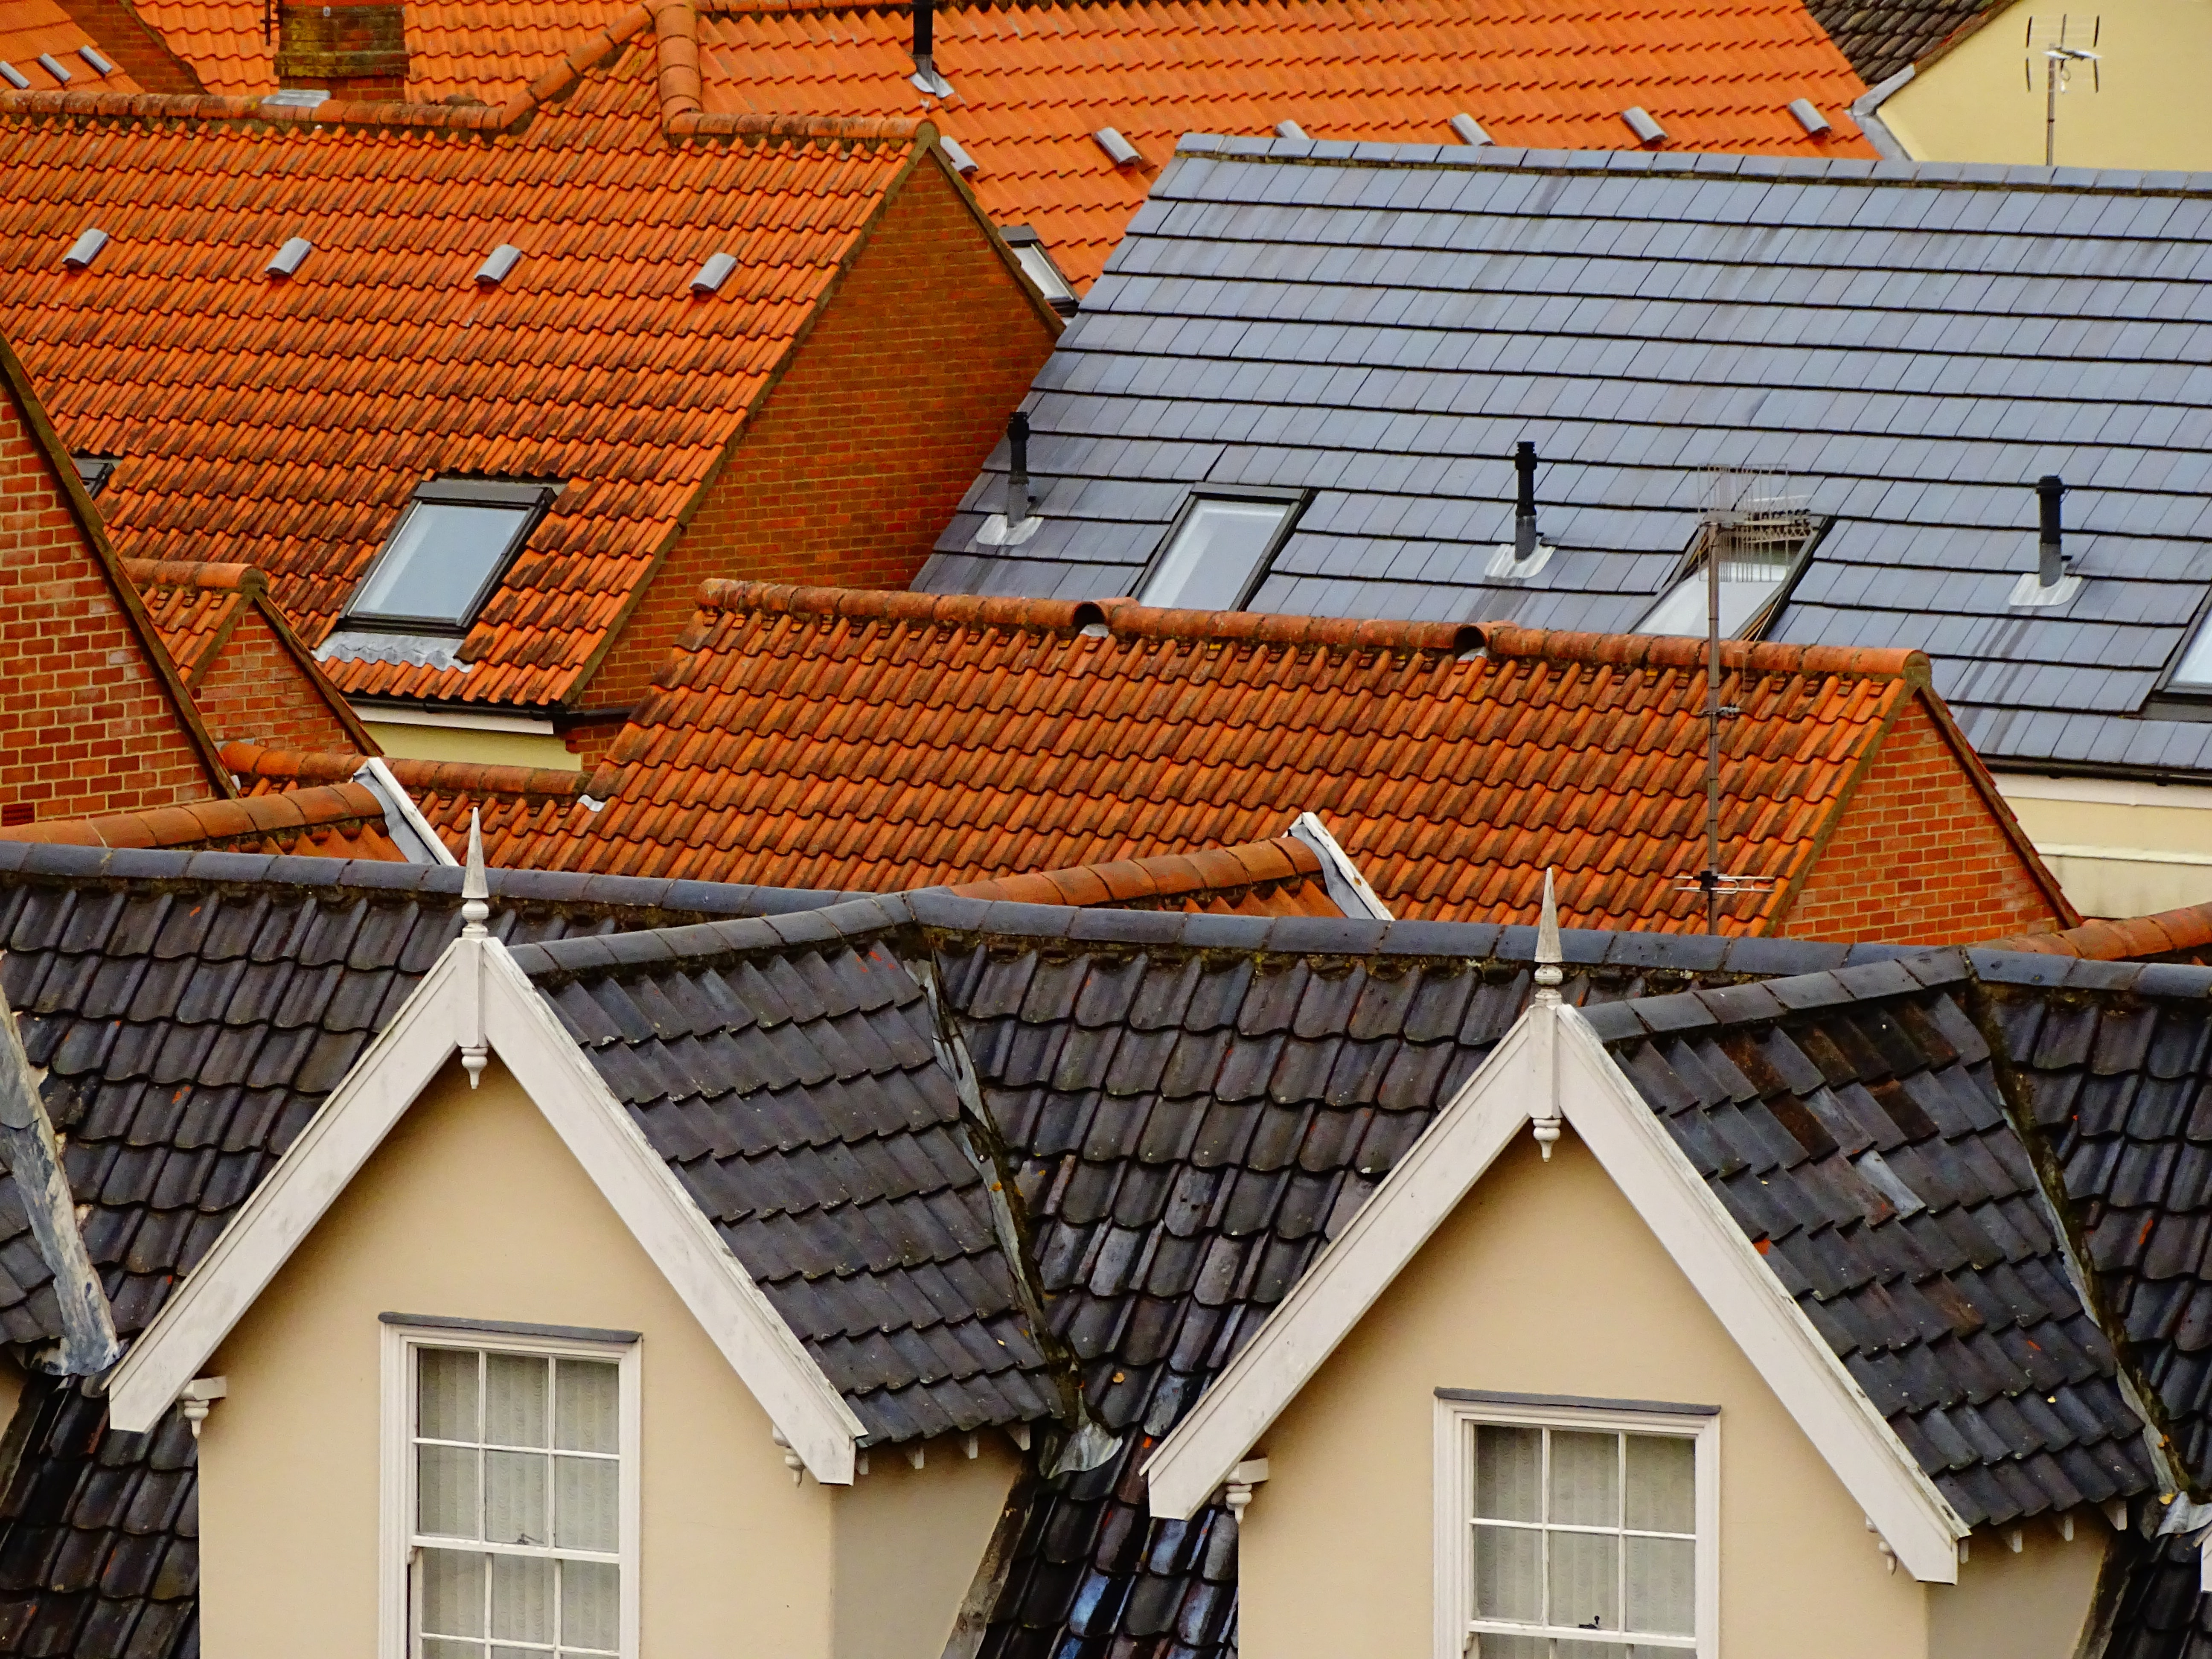 bird's eye view of assorted-color roof tiles